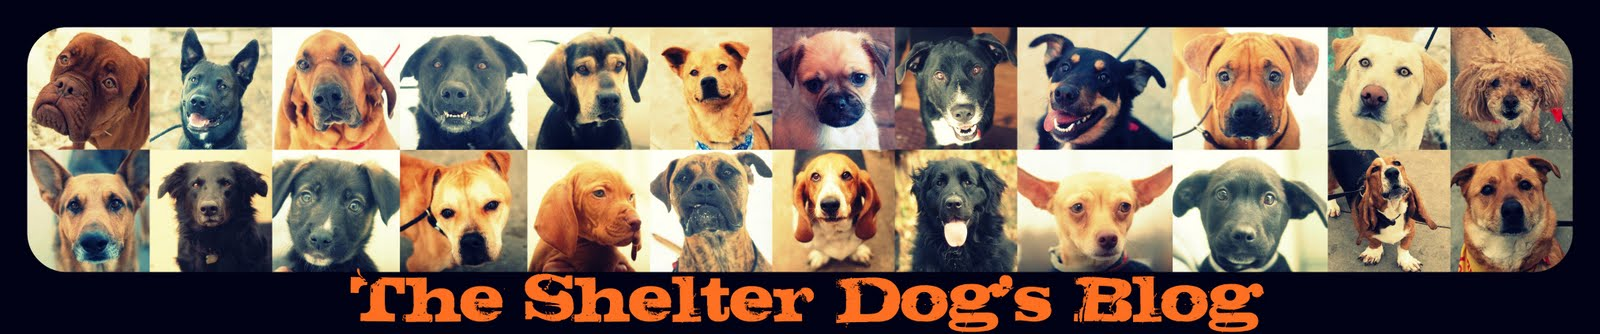 The Shelter Dog's Blog